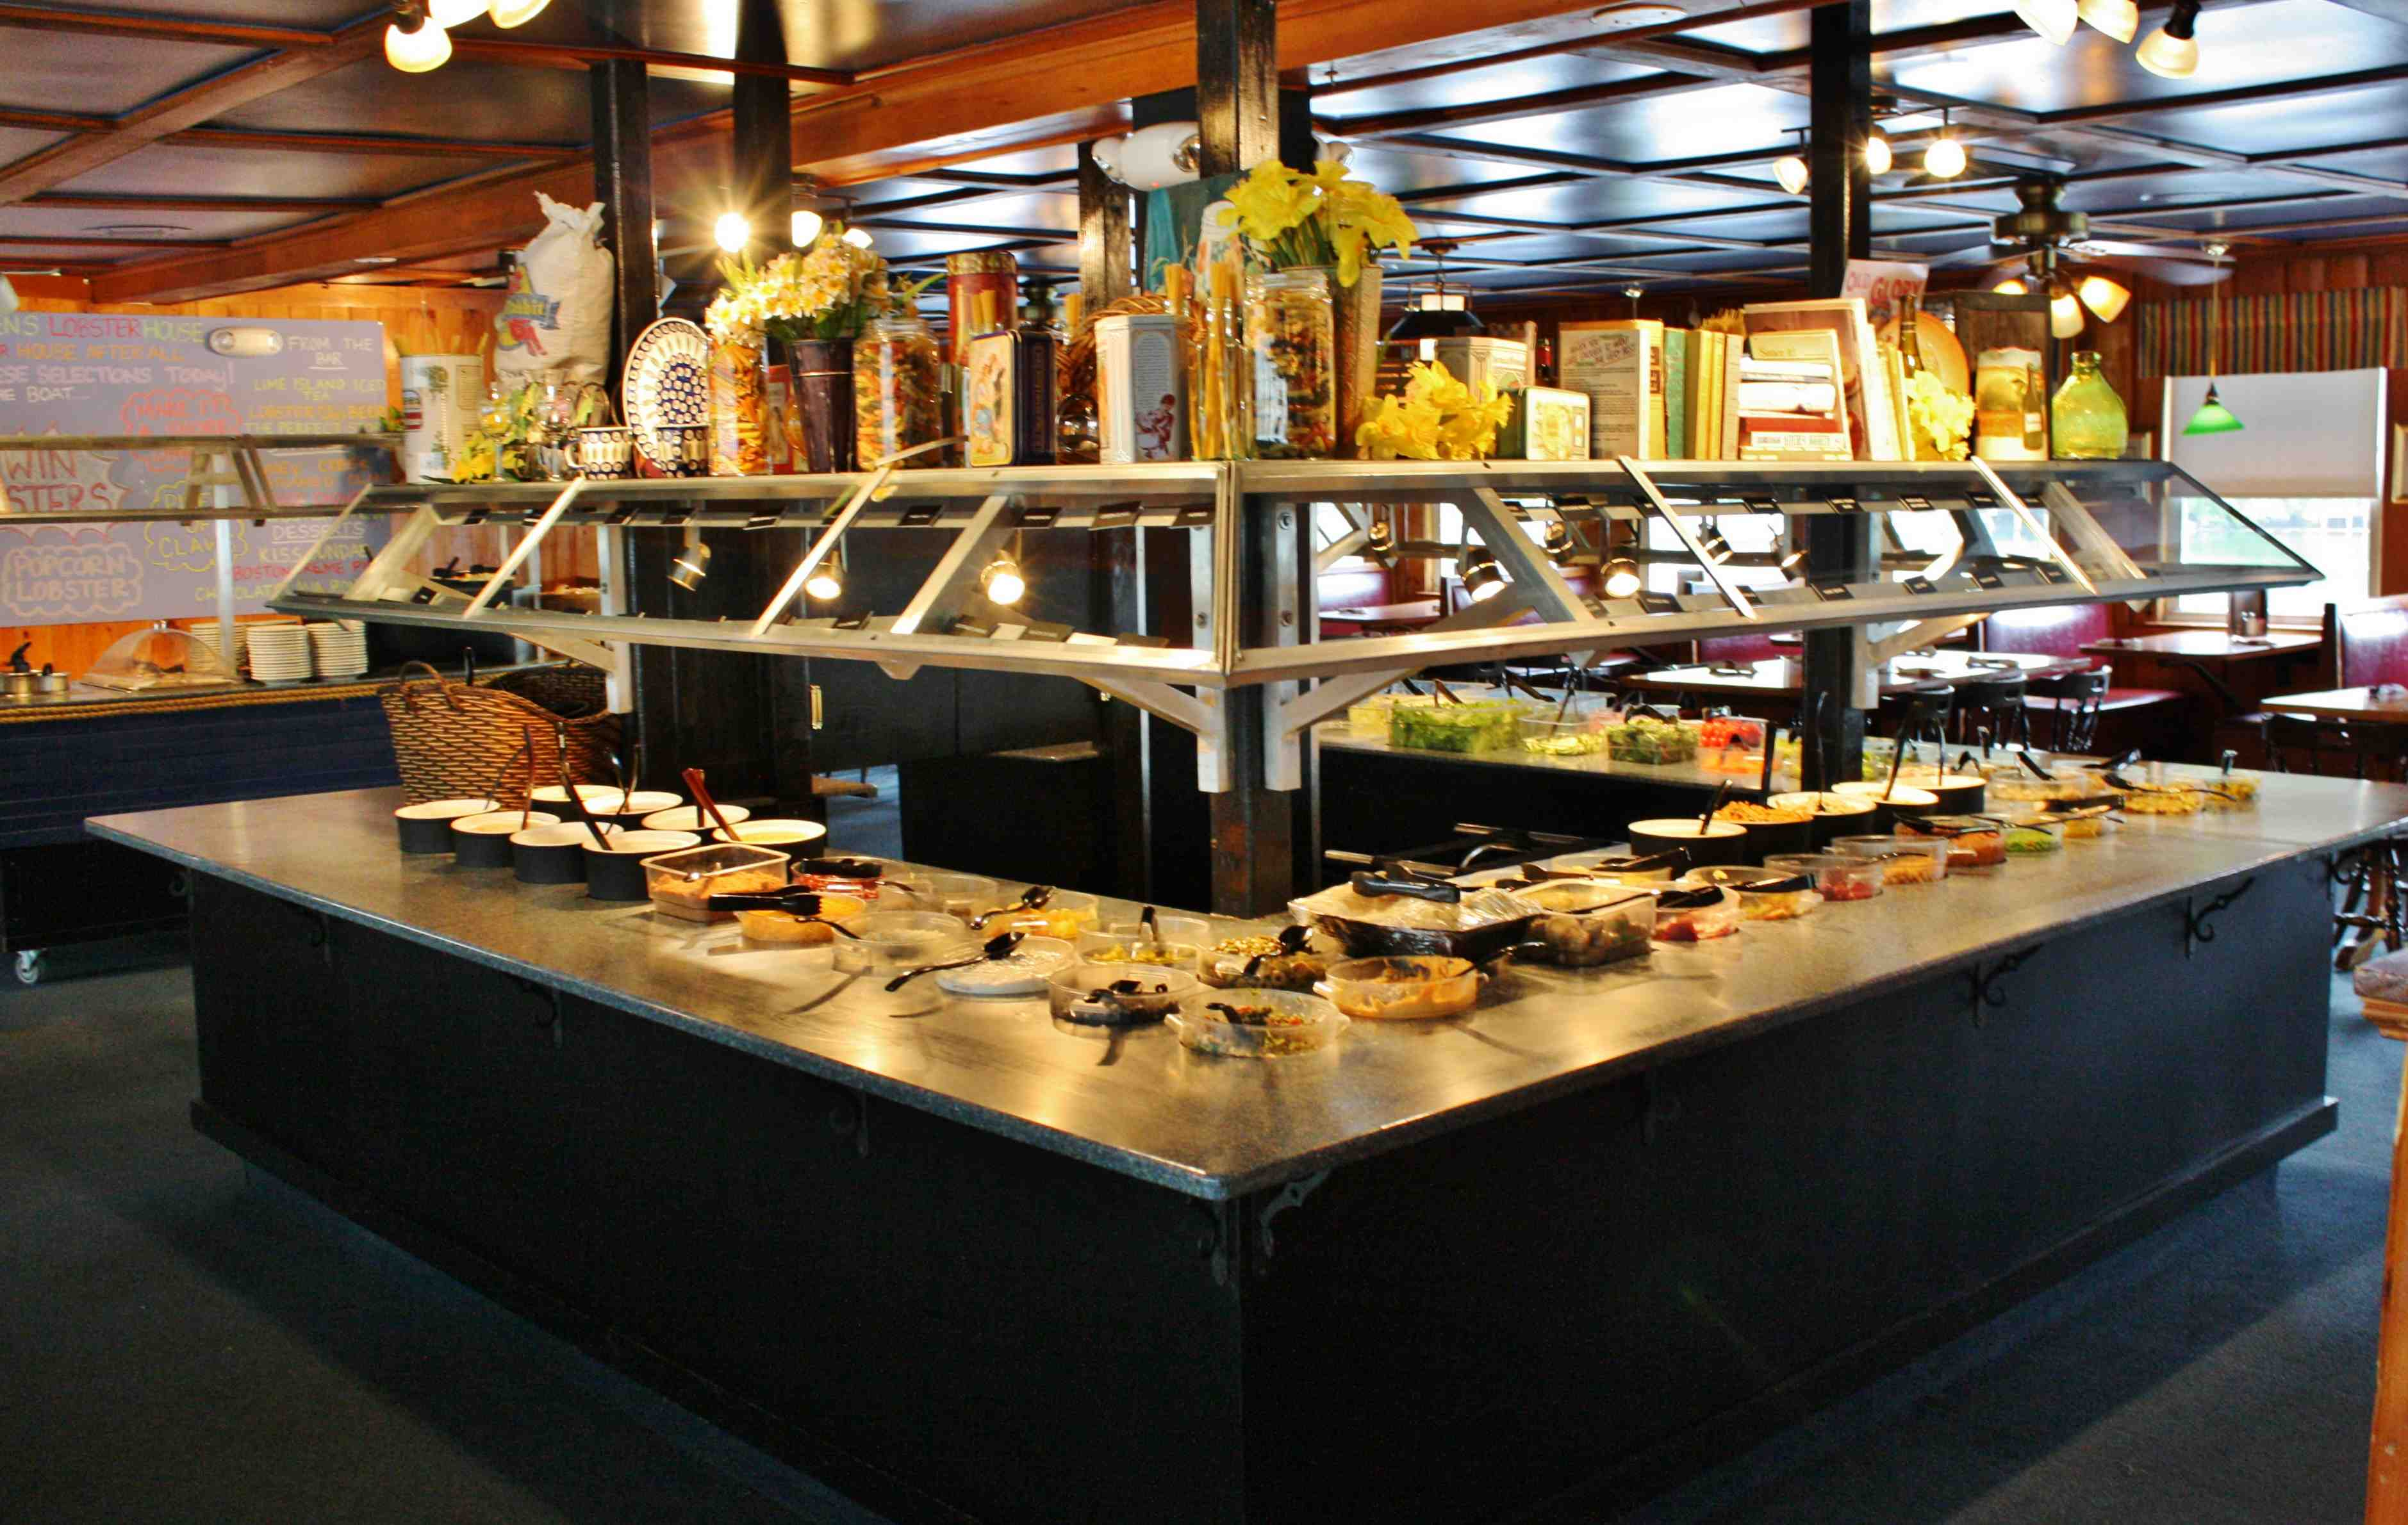 60-items salad bar at Warren's Lobster House in Kittery, Maine.